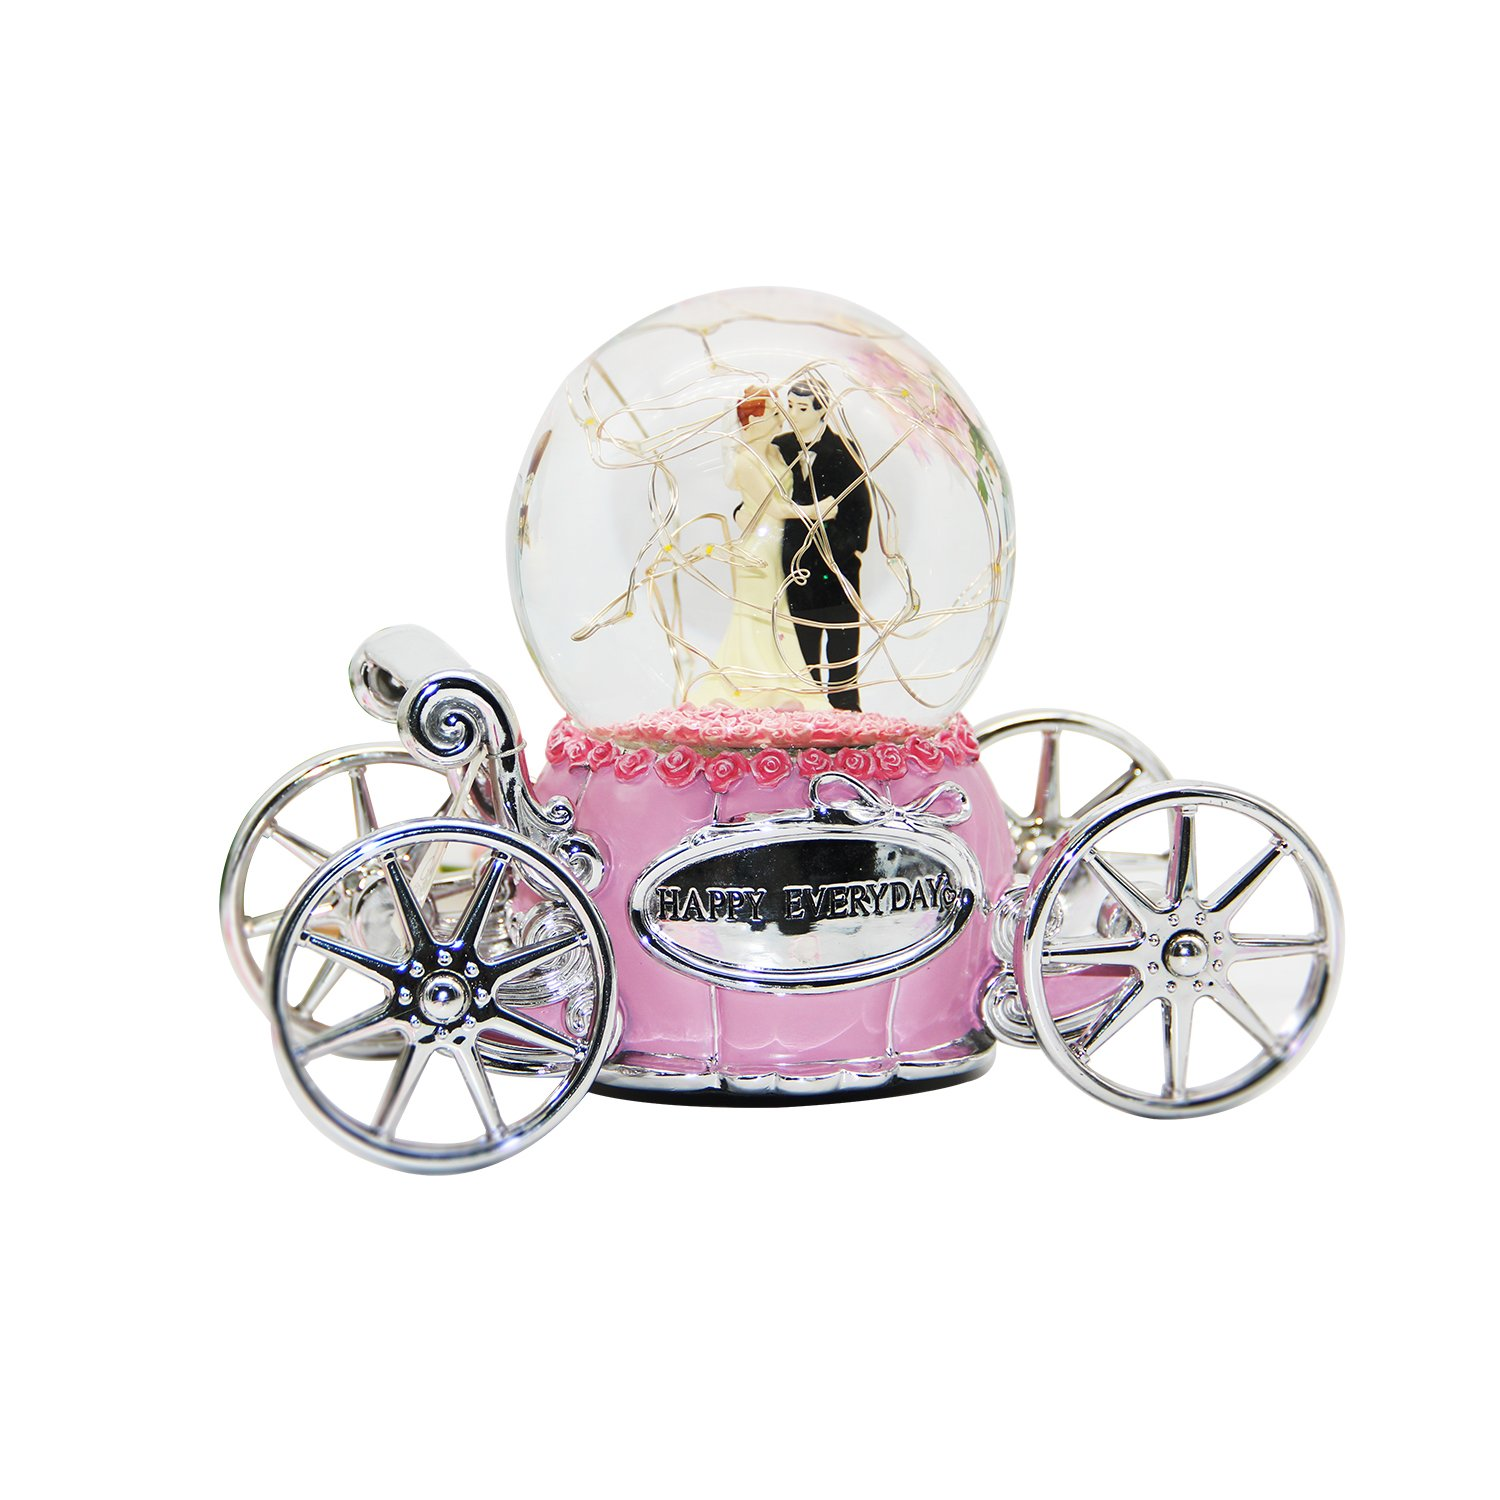 NON ROCK Bride and Groom Pink Music Box Water Globe Snow Crystal Ball Wind Up Led With Music of Castle in the Sky